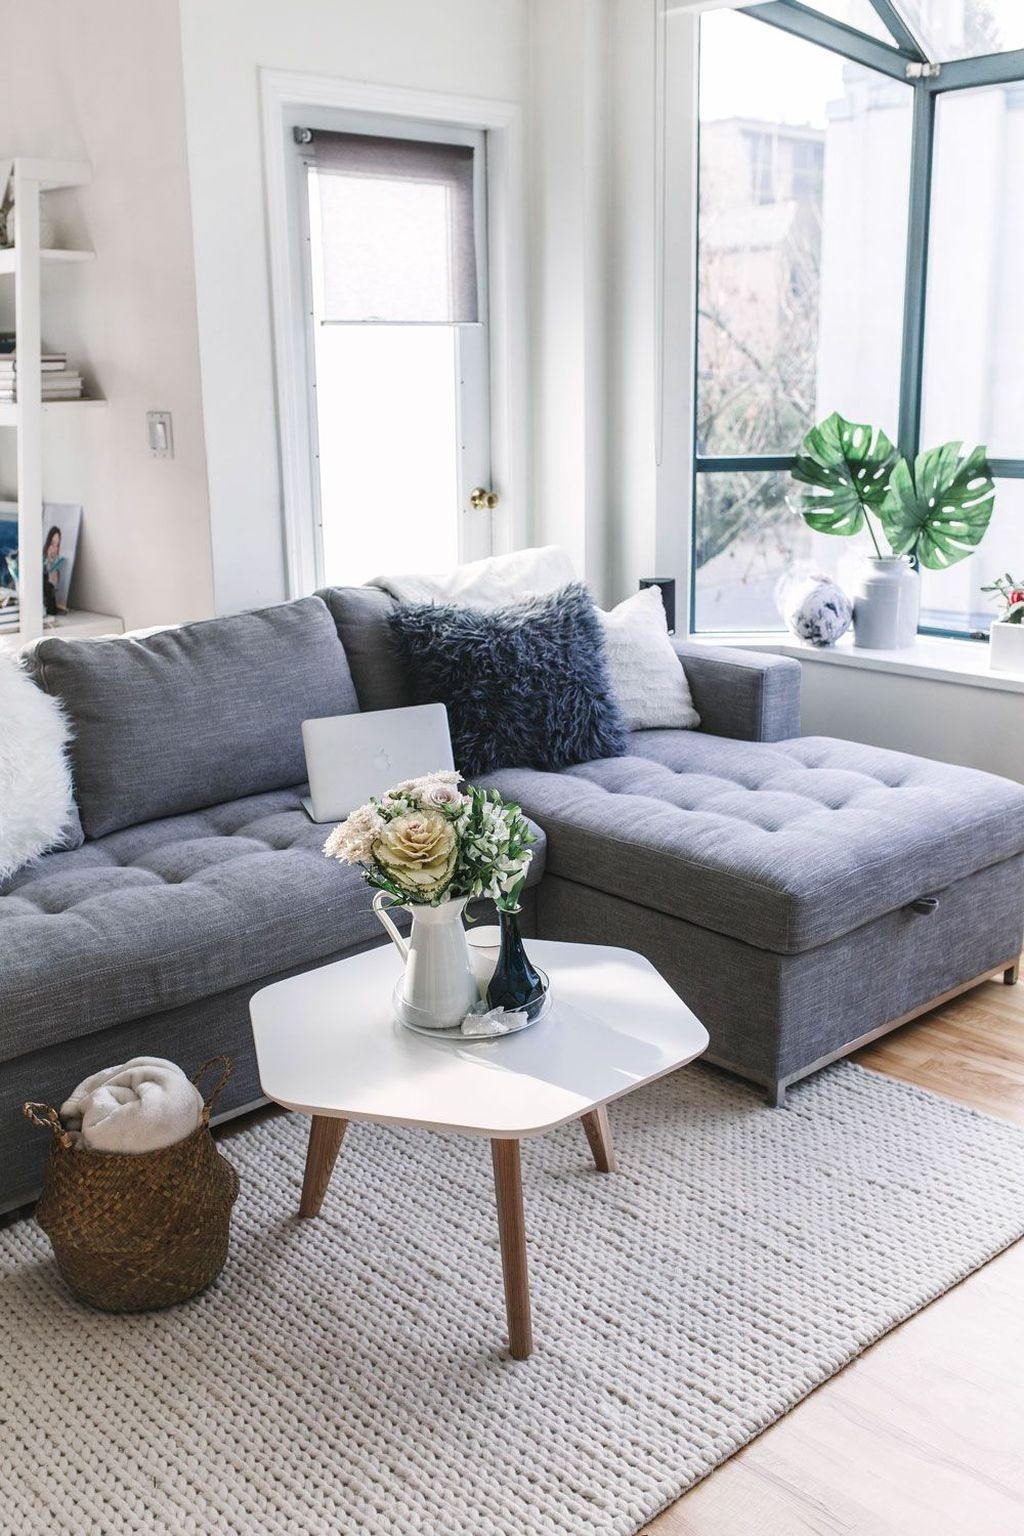 Inspiring Living Room Ideas For Small Space 14 - HOMYHOMEE on Small Living Room Ideas 2019  id=54677